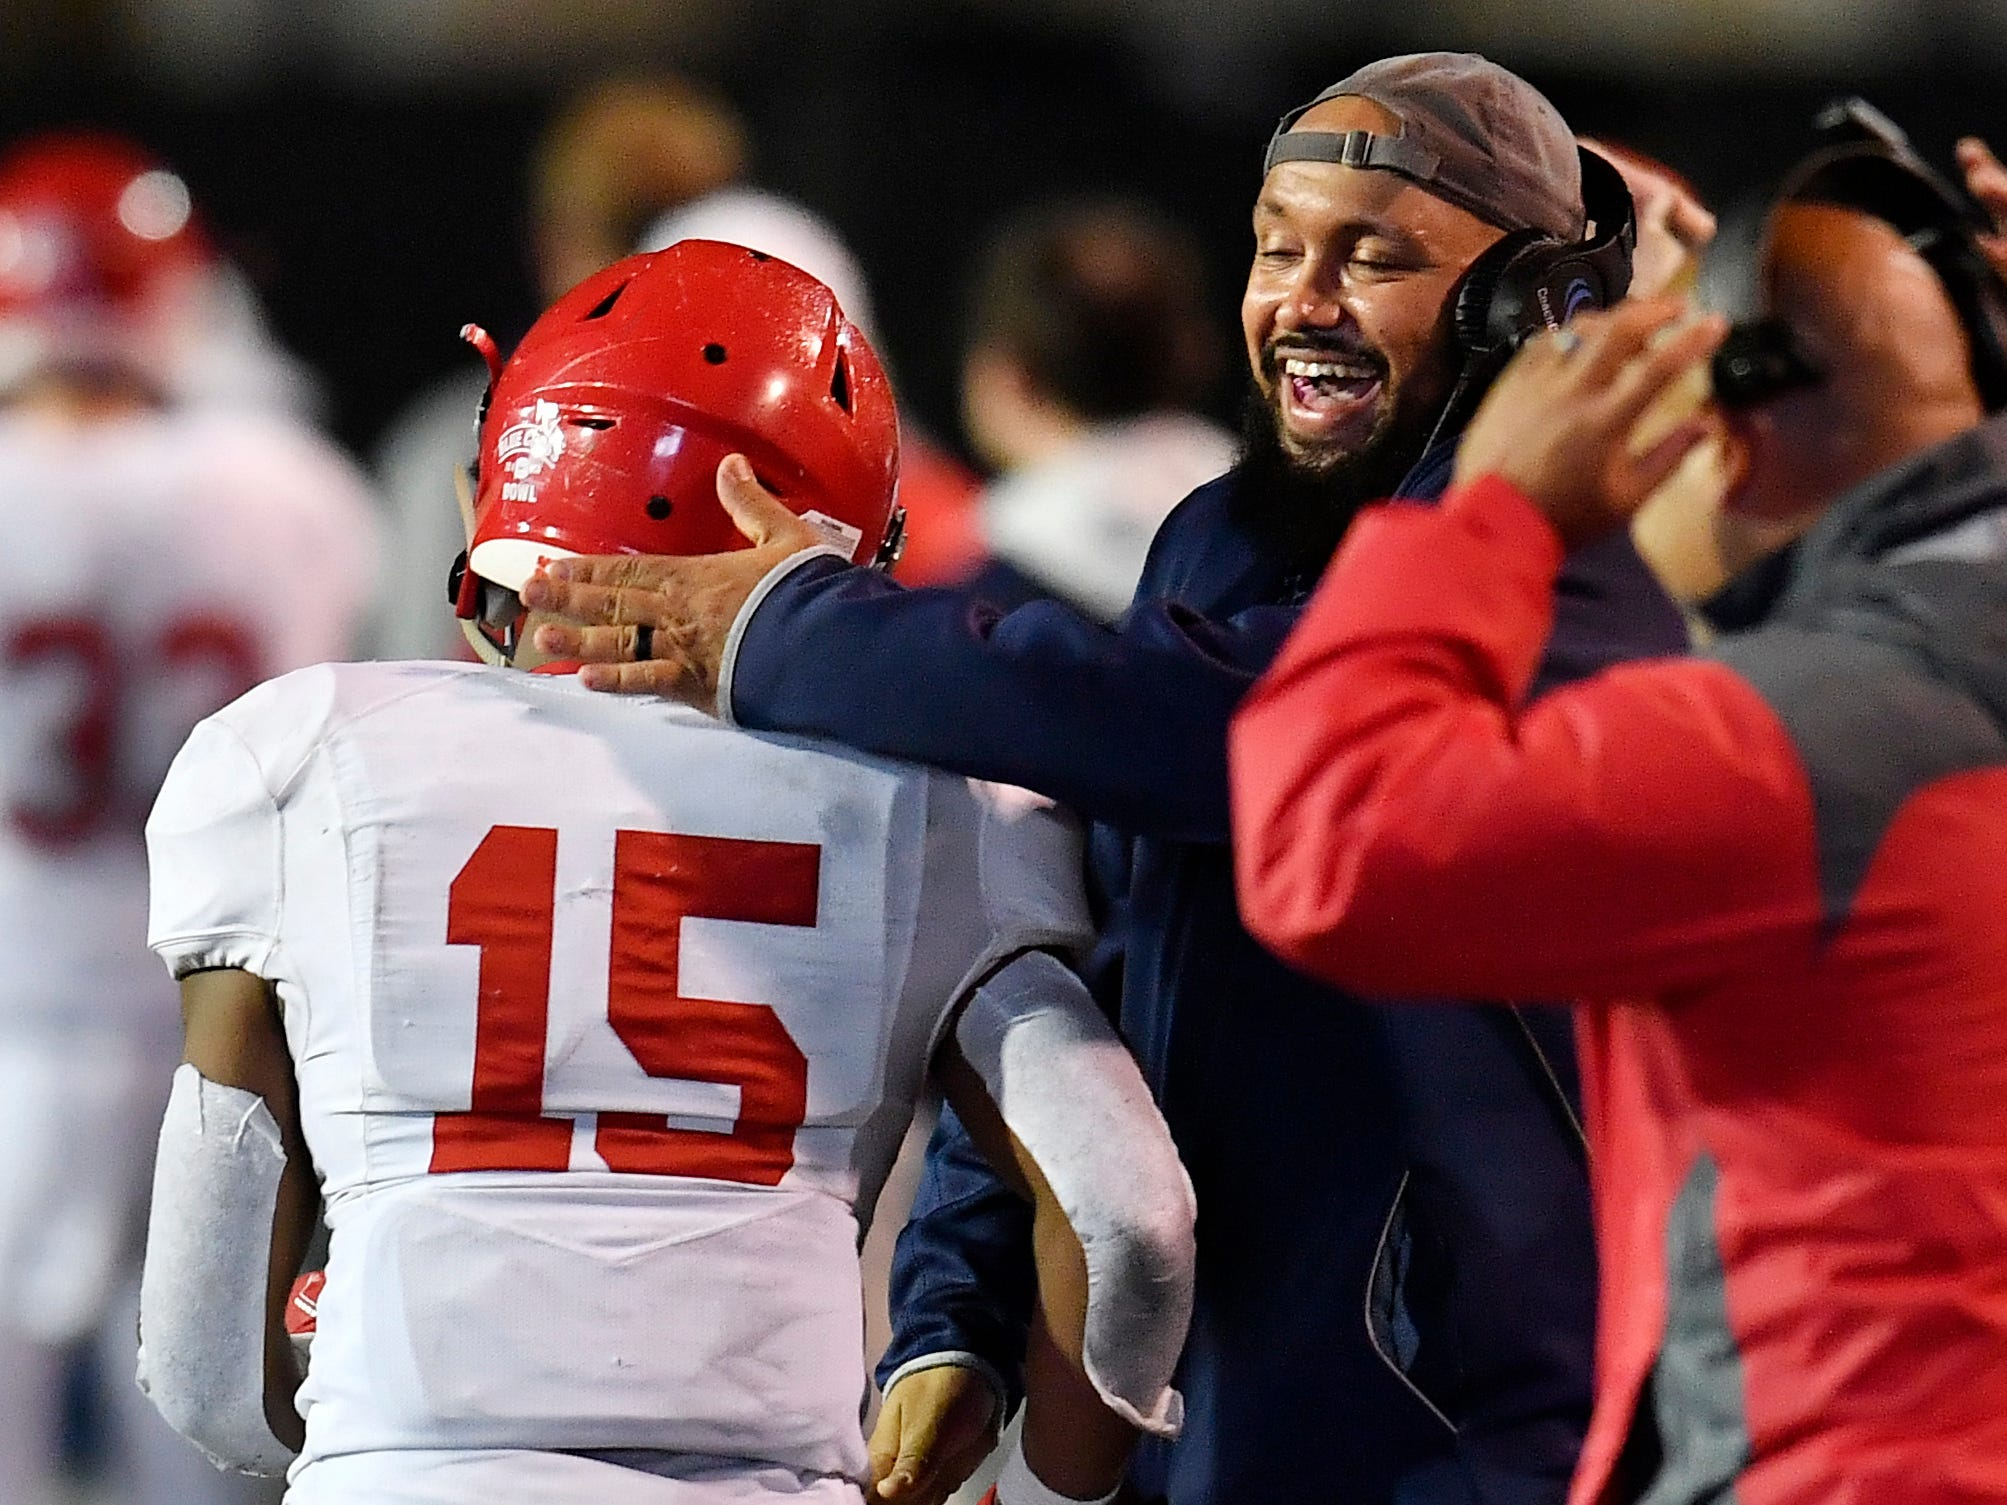 Brentwood Academy running back Jordan James (15) is congratulated after his touchdown in the second quarter at the Division II-AAA BlueCross Bowl state championship at Tennessee Tech's Tucker Stadium in Cookeville, Tenn., on Friday, Nov. 30, 2018.